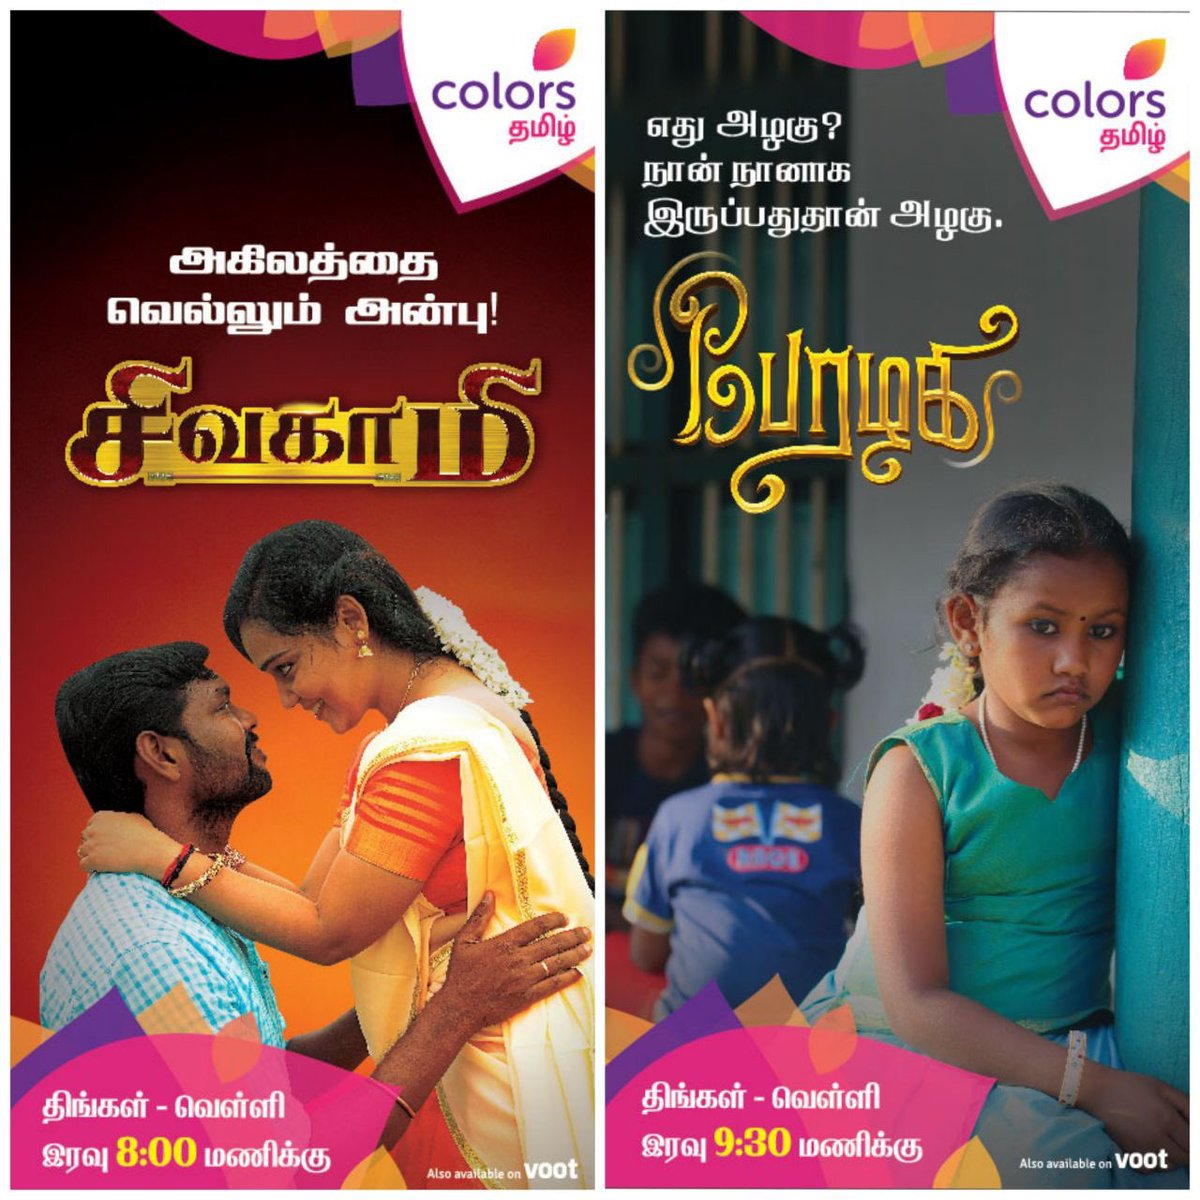 Colors Tamil on Twitter: